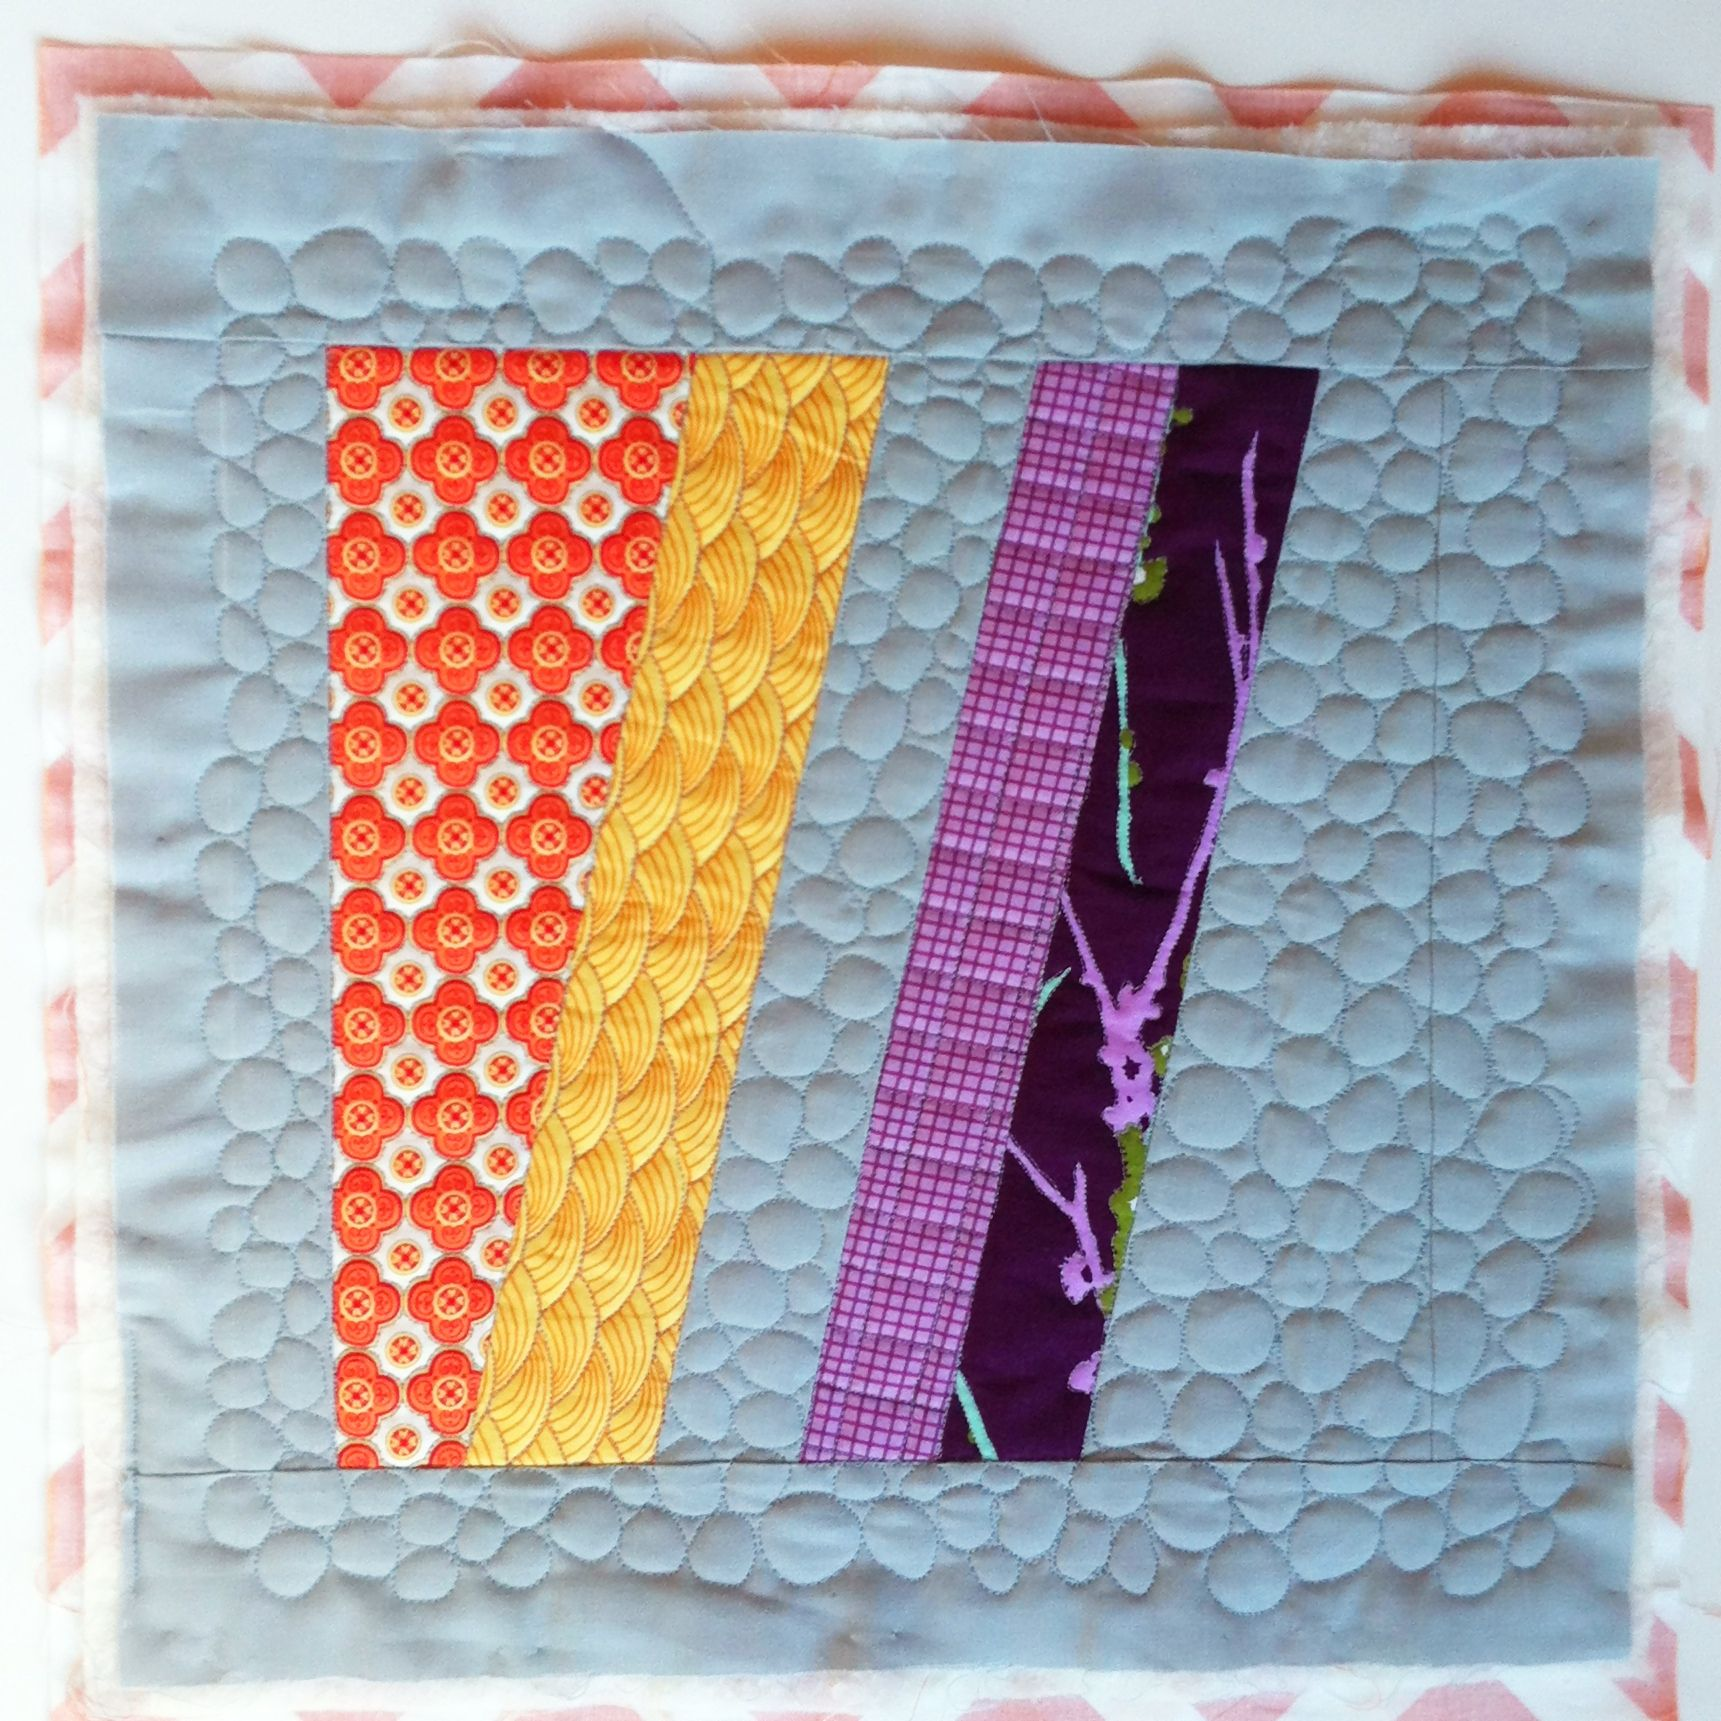 Quilting Done On The Magnum Block For Skill Builder BOM